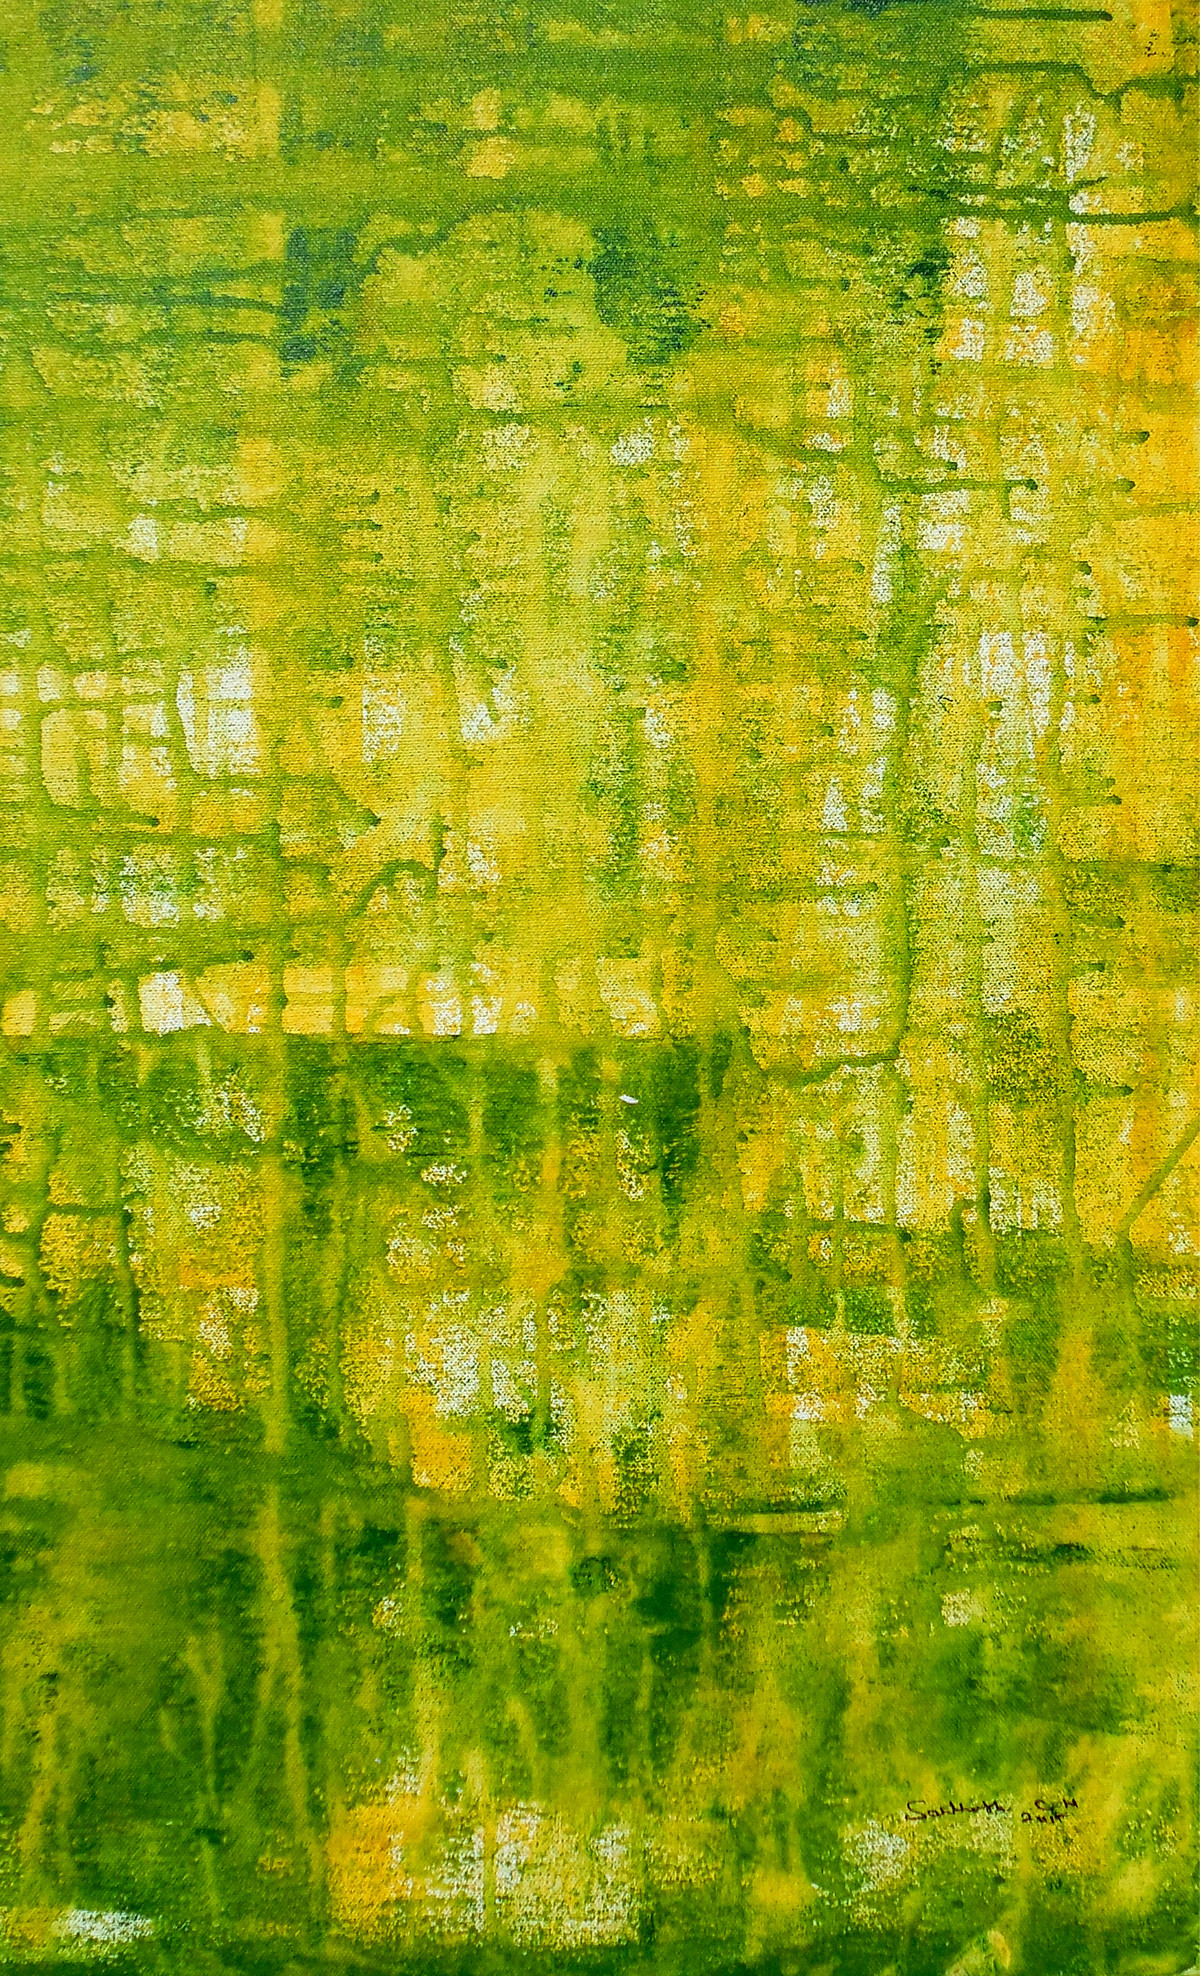 abstract 38 by Santhosh CH, Abstract Painting, Acrylic on Canvas, Green color